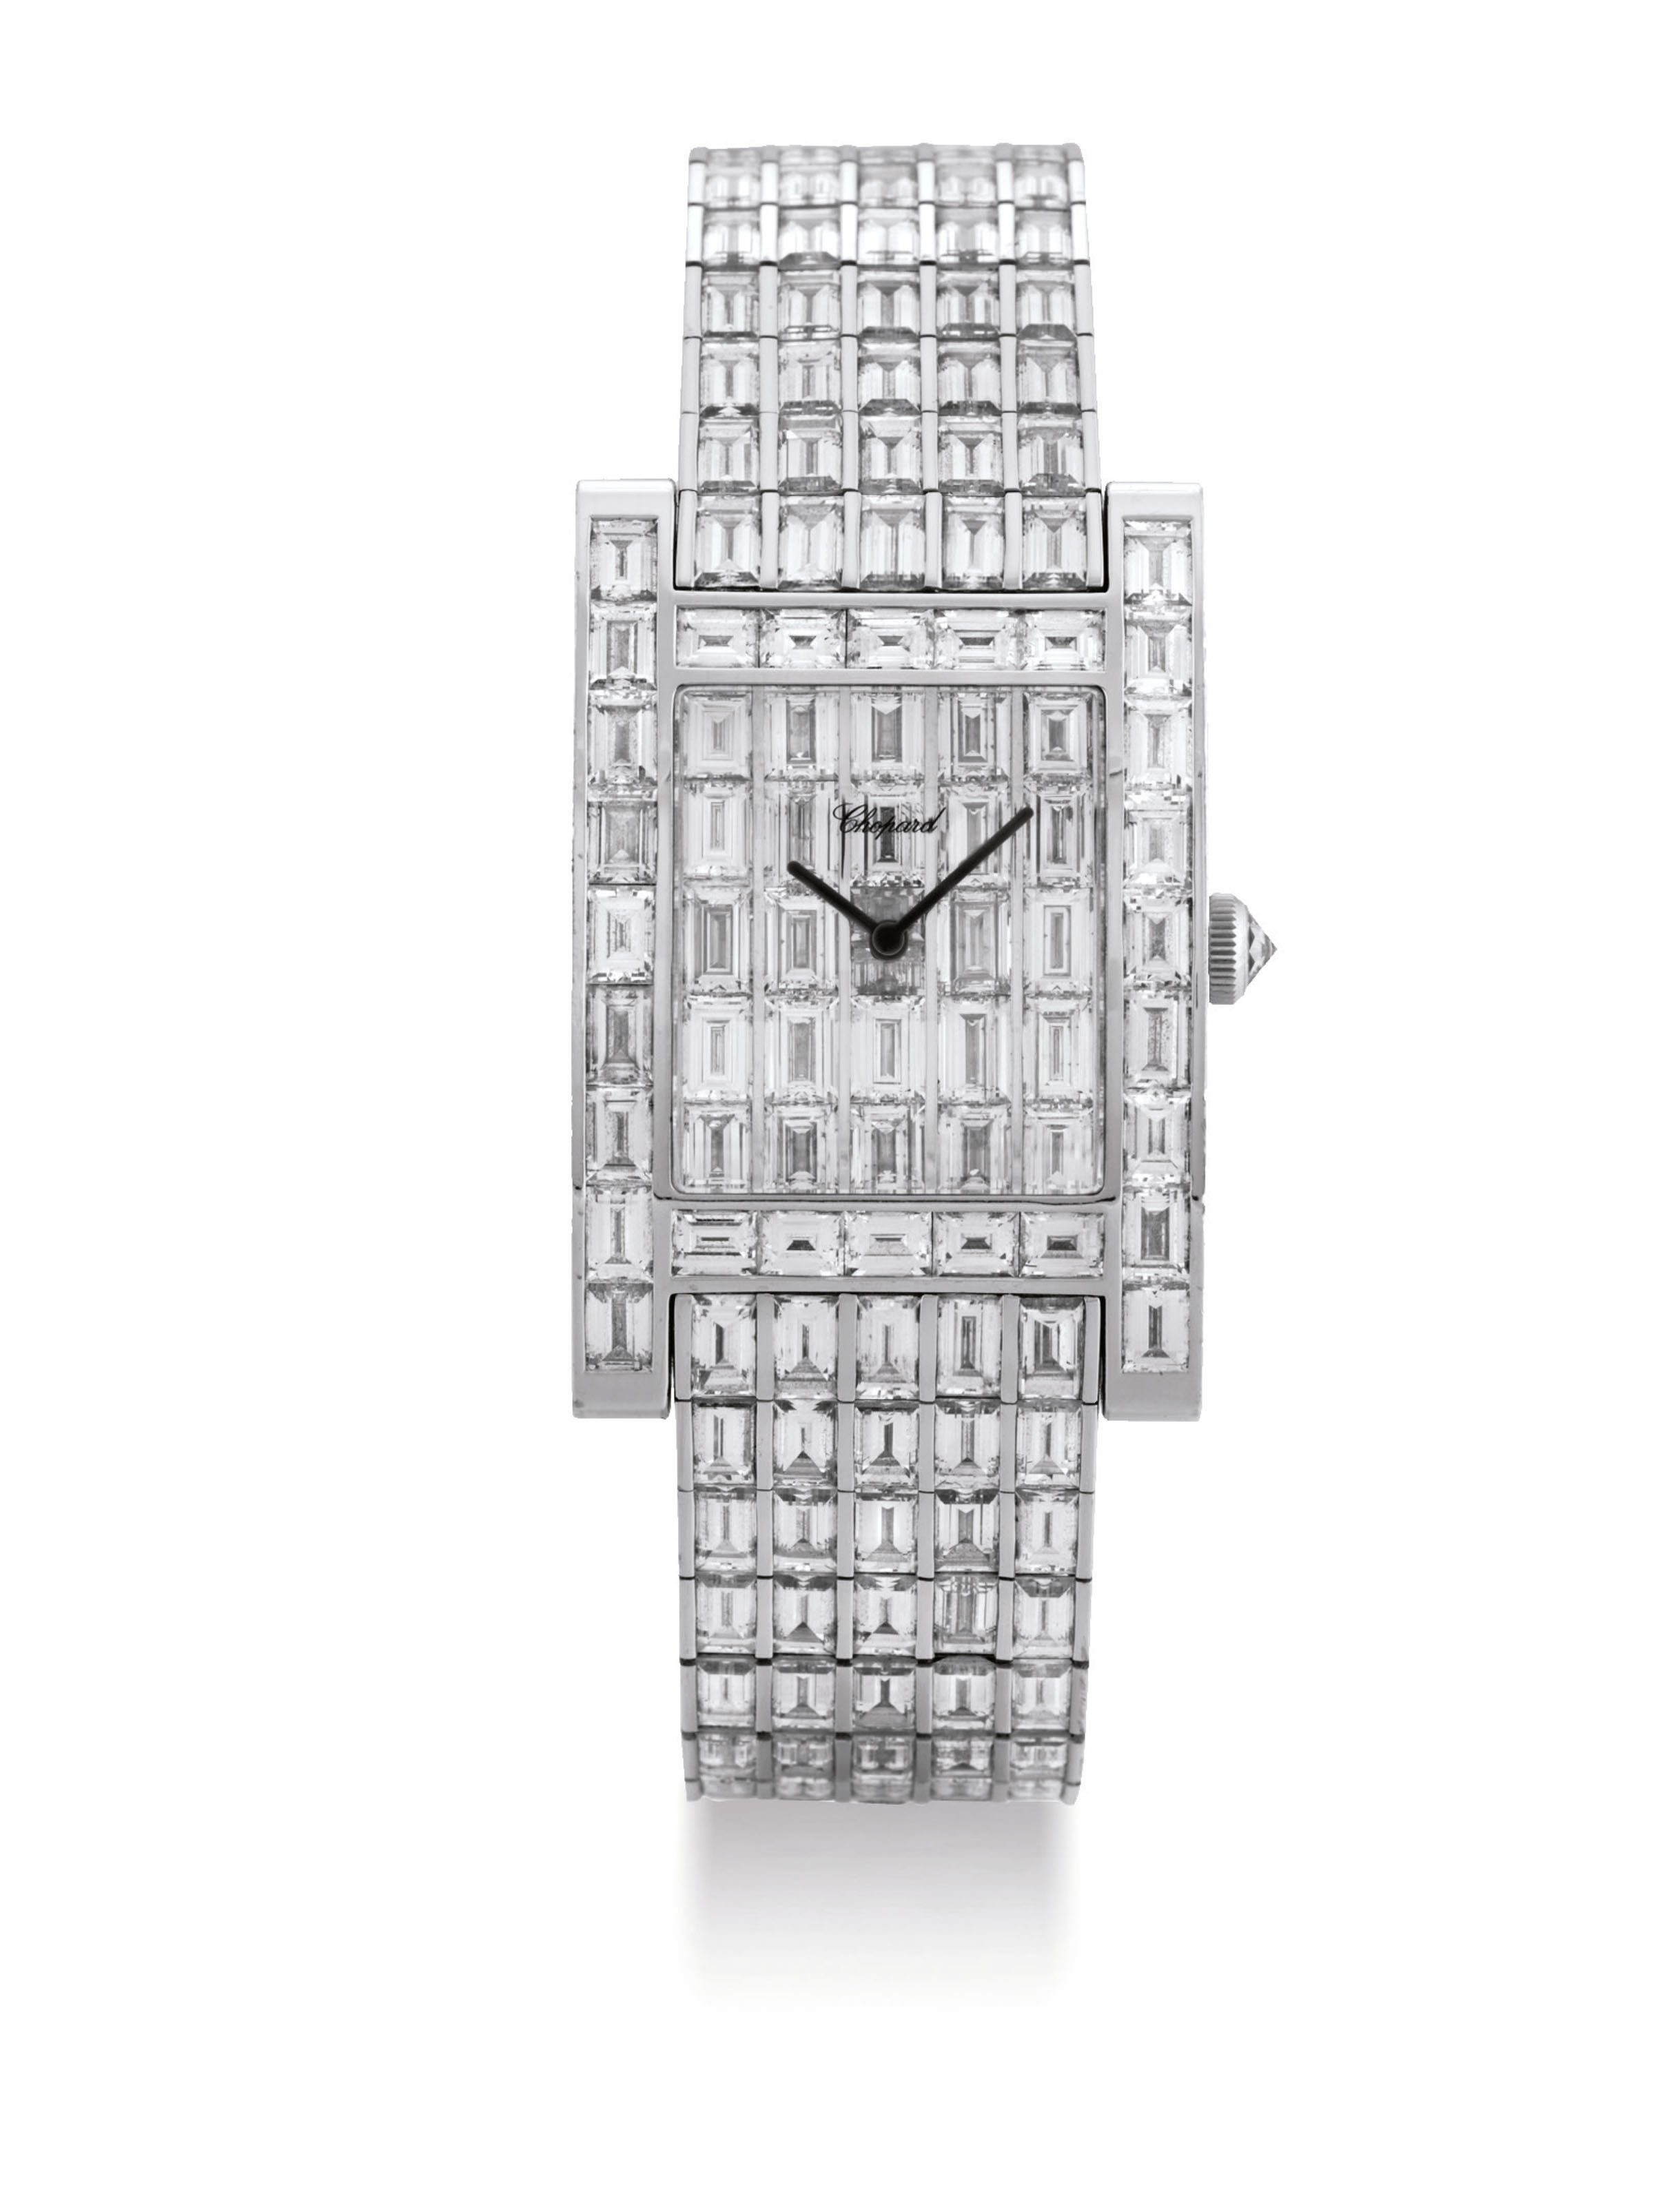 CHOPARD. A MAGNIFICENT AND RARE 18K WHITE GOLD AND DIAMOND-SET RECTANGULAR BRACELET WATCH